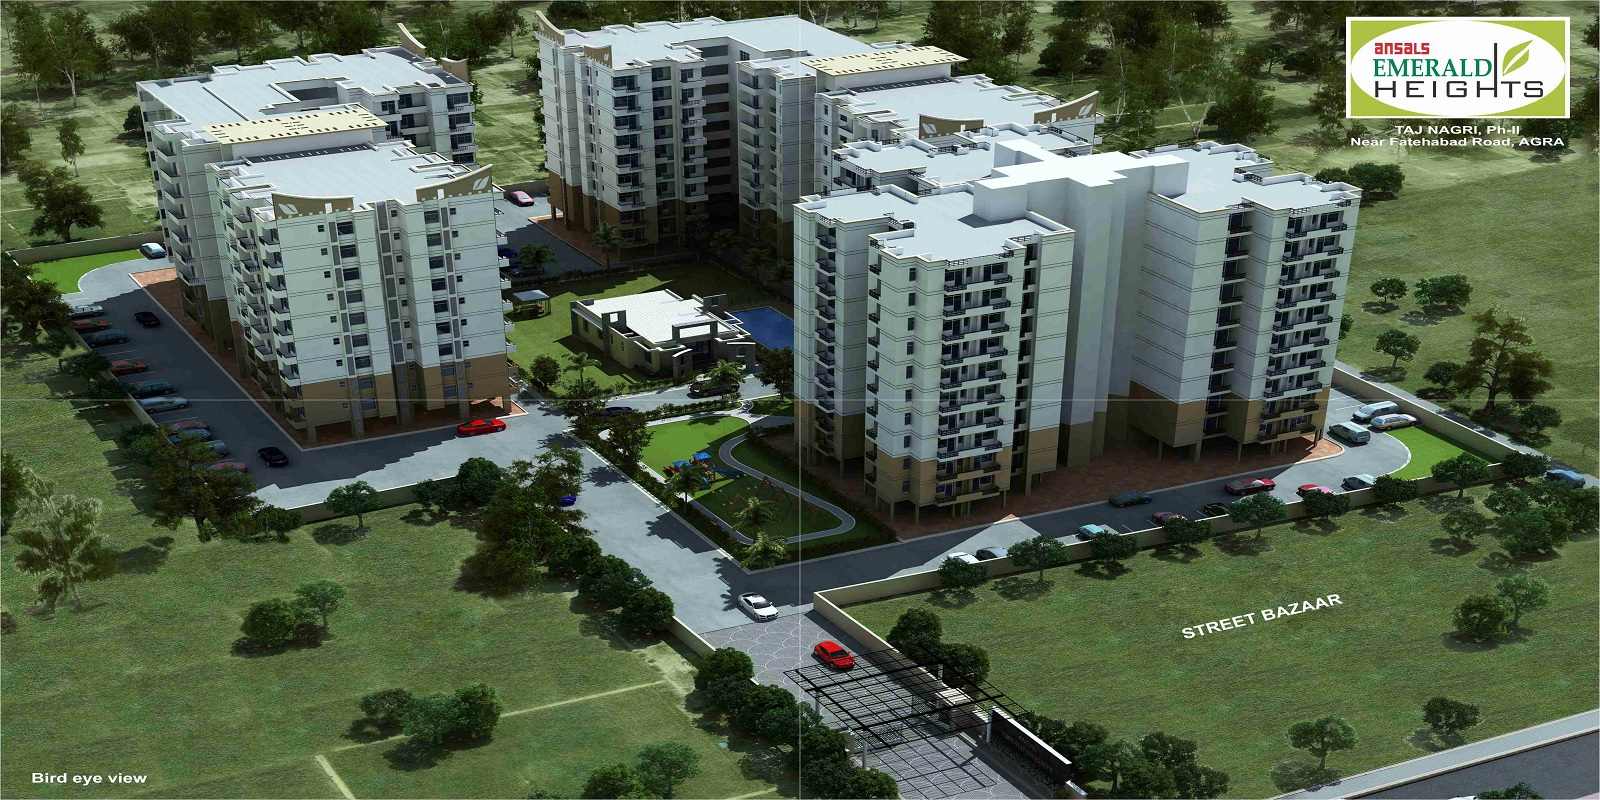 ansal emerald heights project large image1